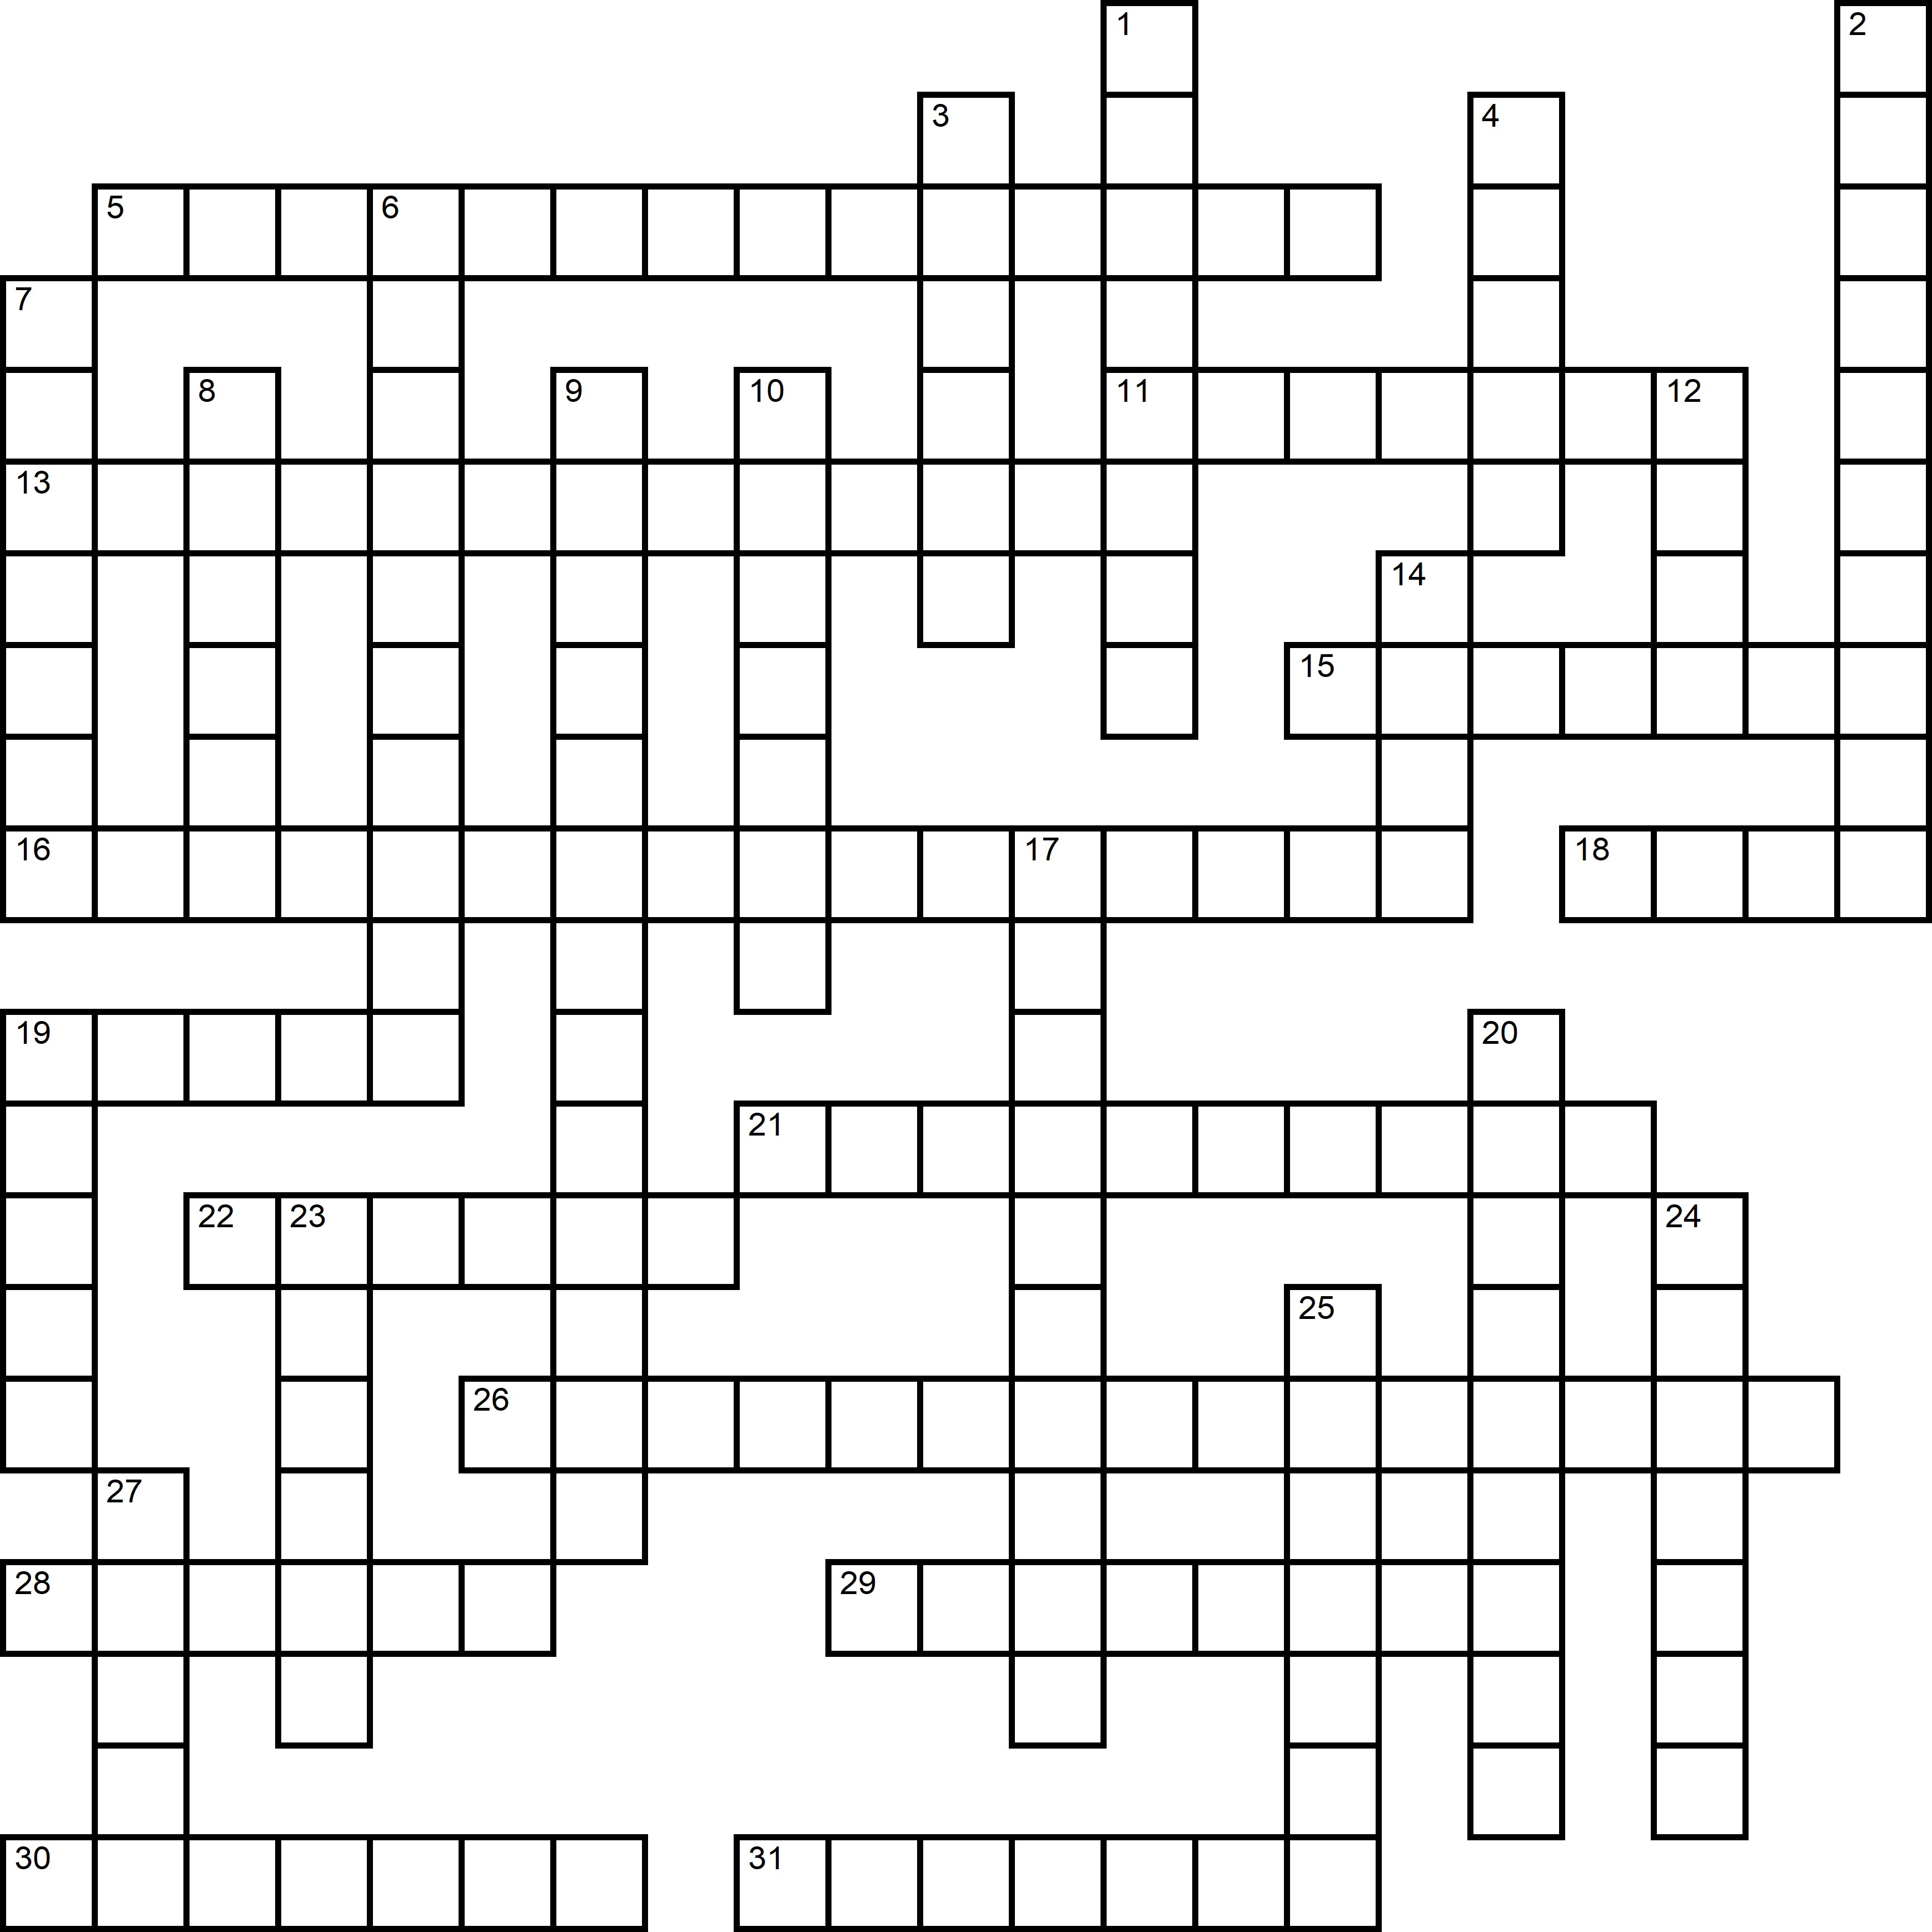 Easy Crossword About Children's Day